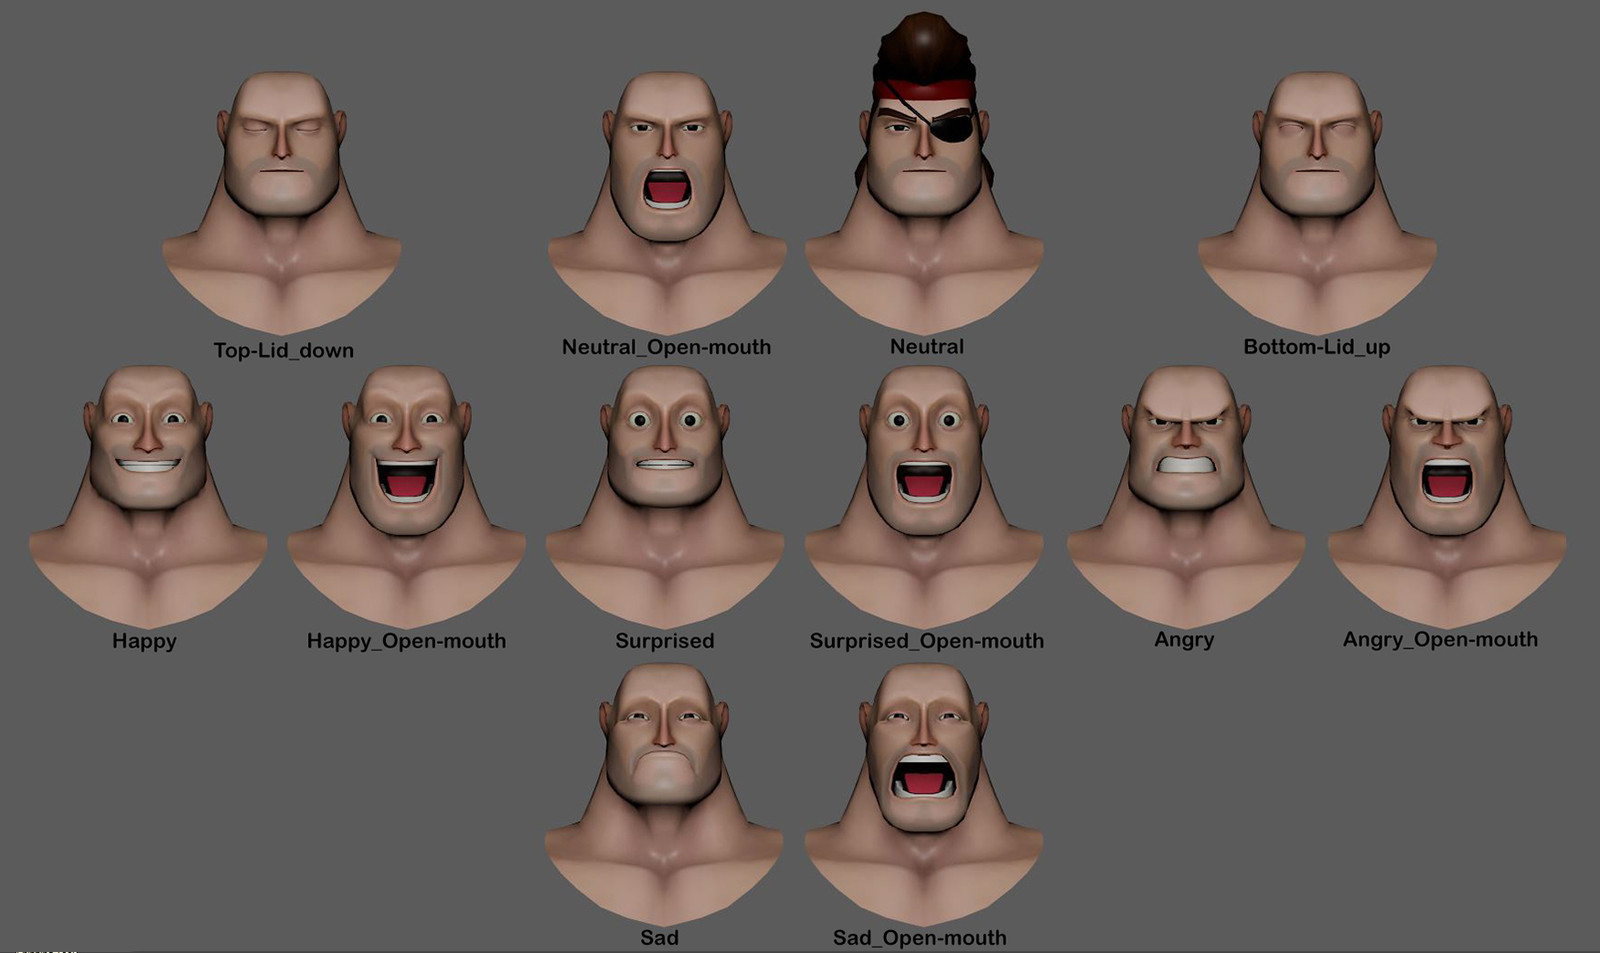 These are the face-shapes I made for the VR Company Mindshow, Inc in 2016.  The heads were already modeled and textured, but I did change some of the topology on a few to have (what I consider) proper topology flow.